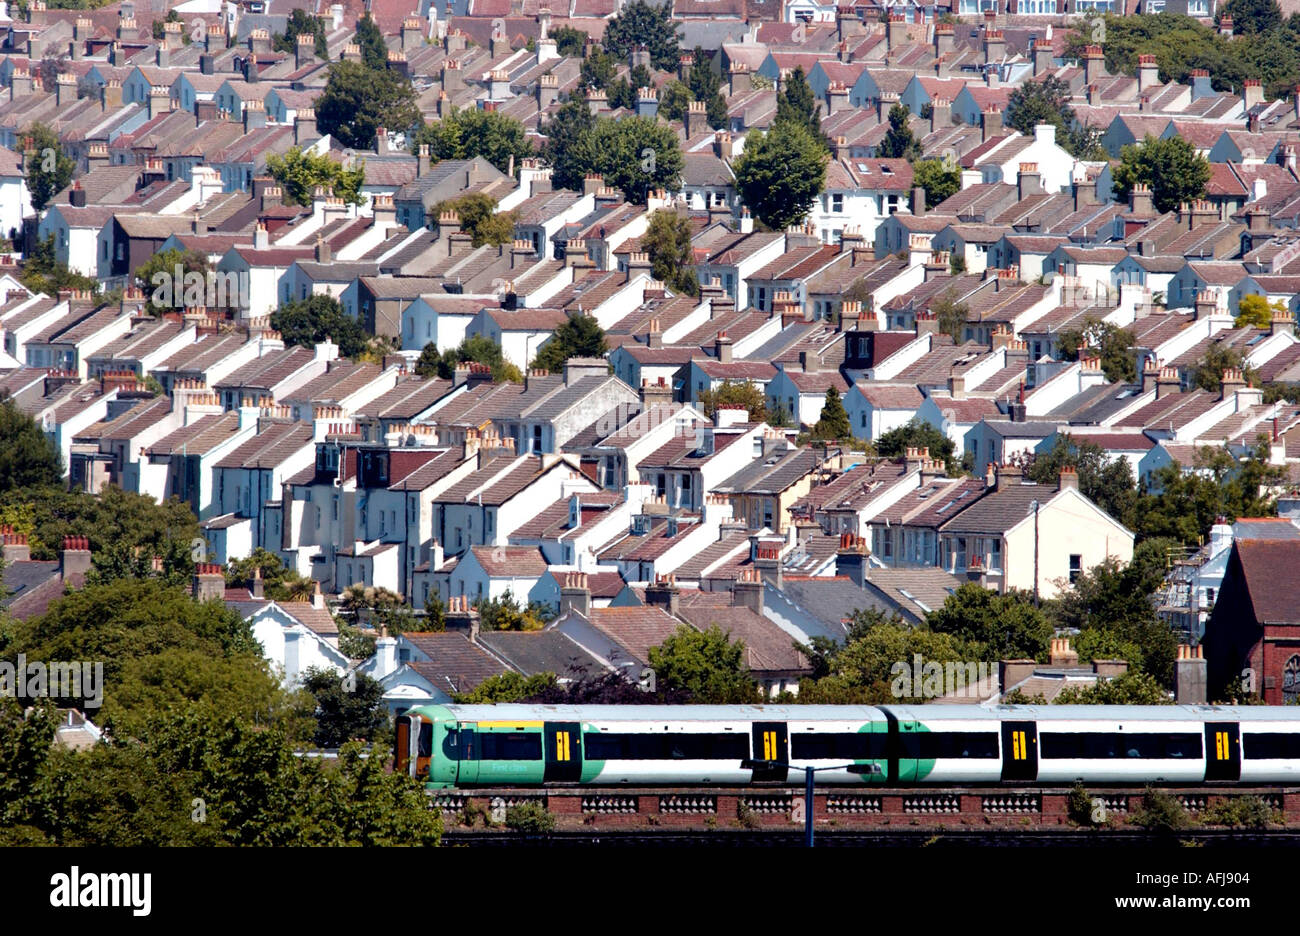 Modern commuter line uses old Victorian viaduct in Brighton to take commuter trains at rooftop level over the city. - Stock Image